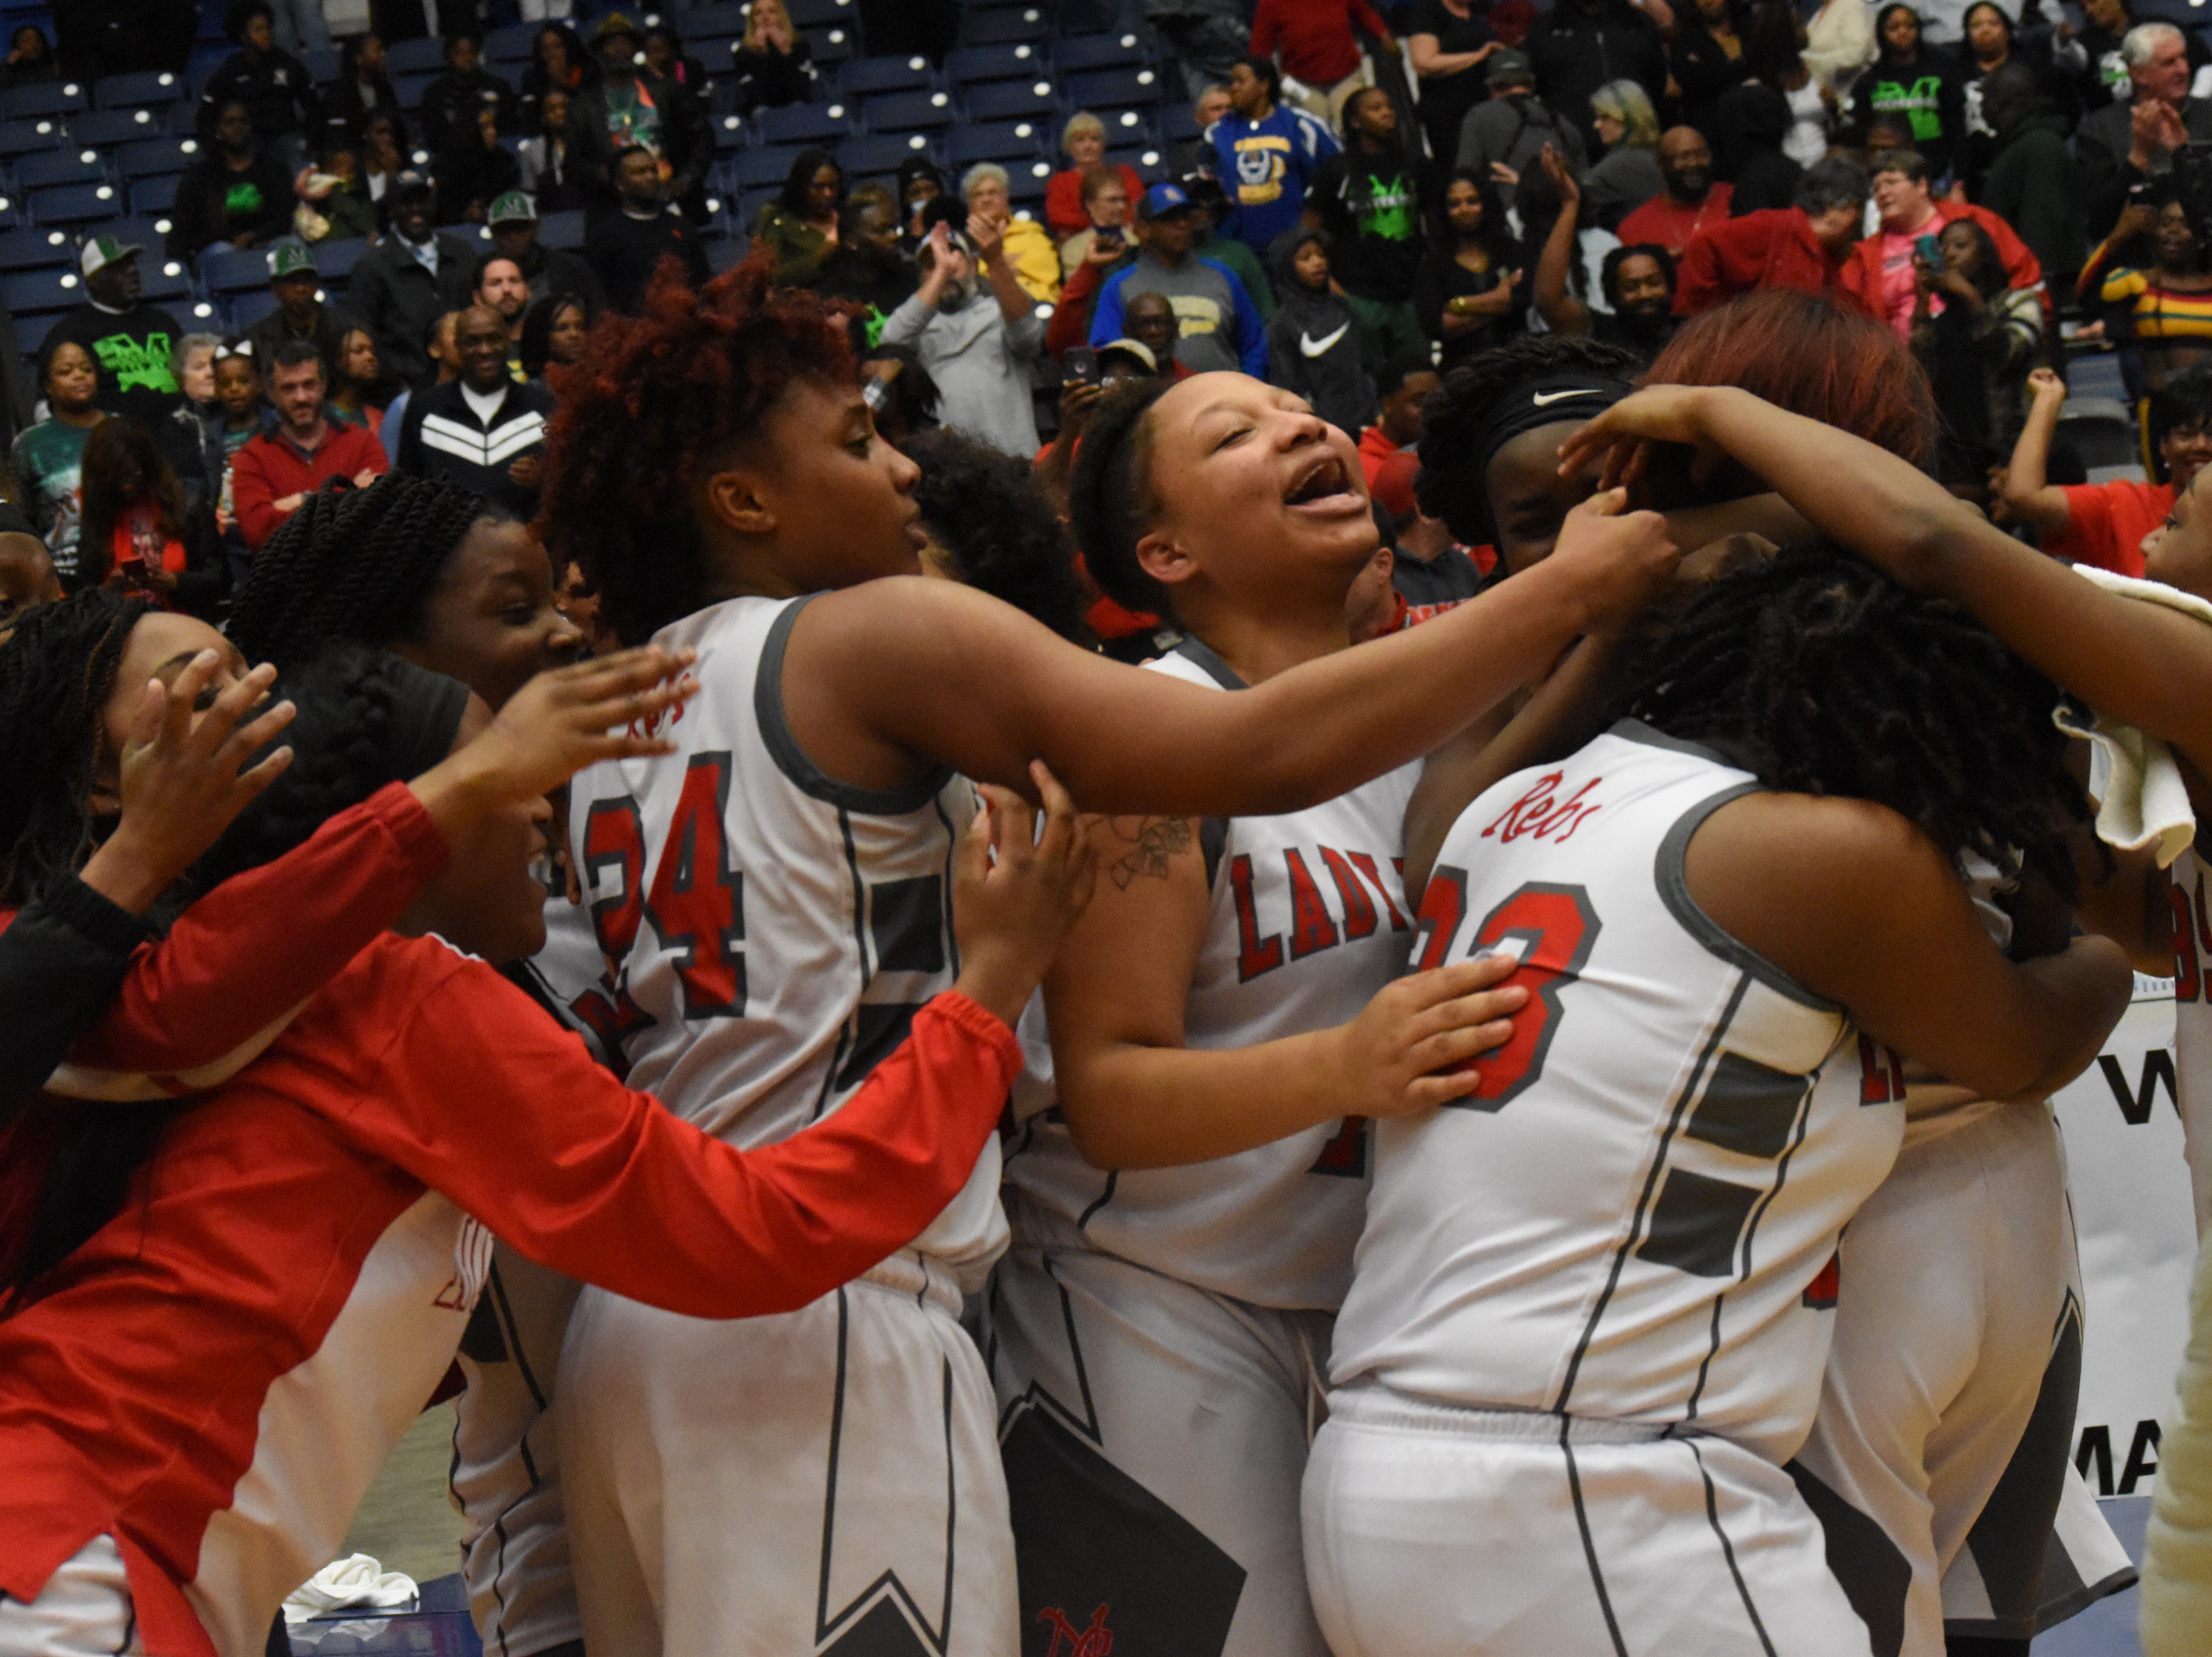 North Caddo Lady Rebels Raven celebrate their win over Red River 48-47 in the last second of the Class 2A semifinal game of the 2019 Allstate Sugar Bowl 2019 Louisiana High School Athletic Association Girl's State Basketball Marsh Madness held Thursday, Feb. 28, 2019 at the Rapides Parish Coliseum in Alexandria.